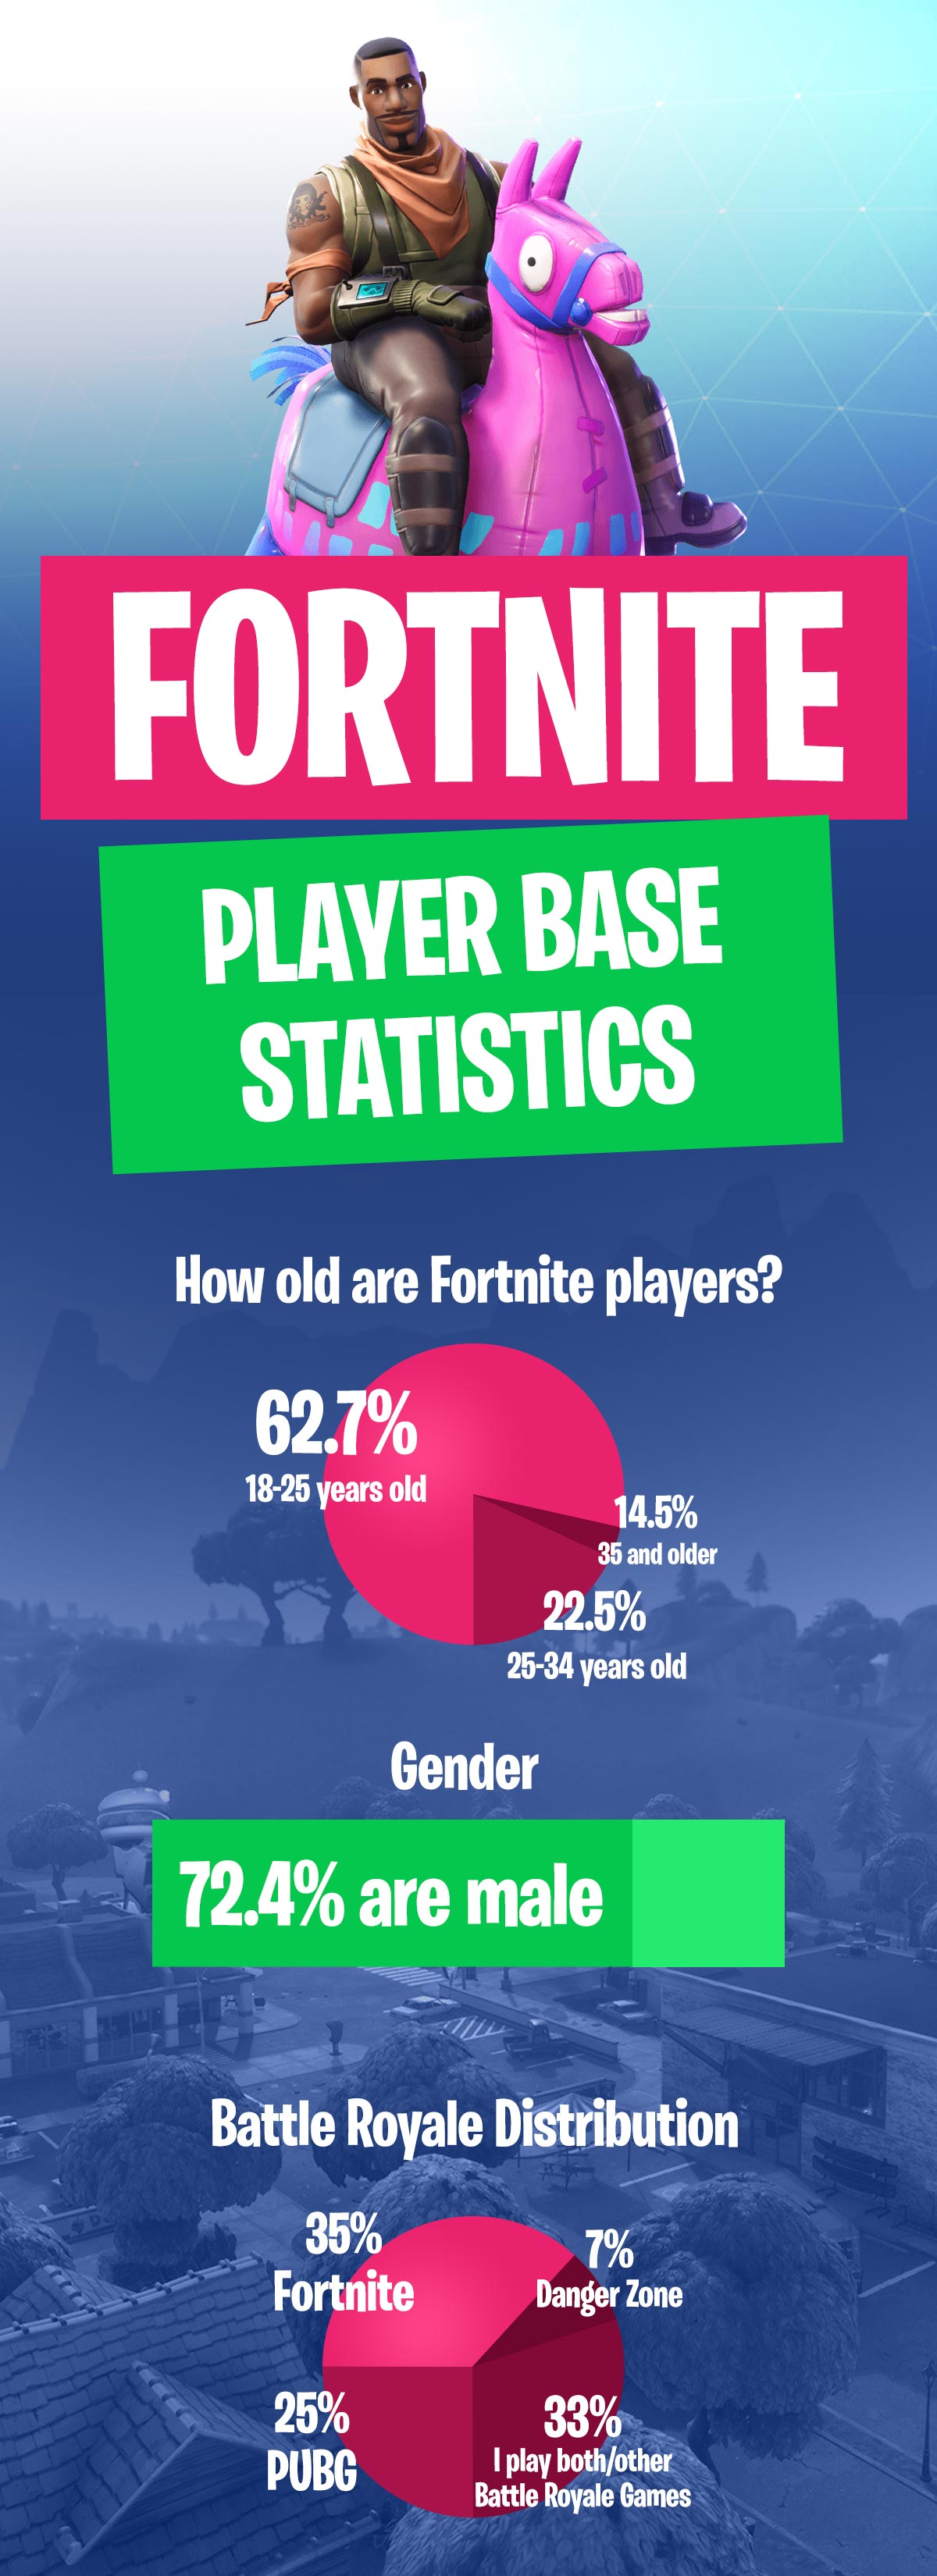 Fortnite Battle Royale Infographic Age and Gender